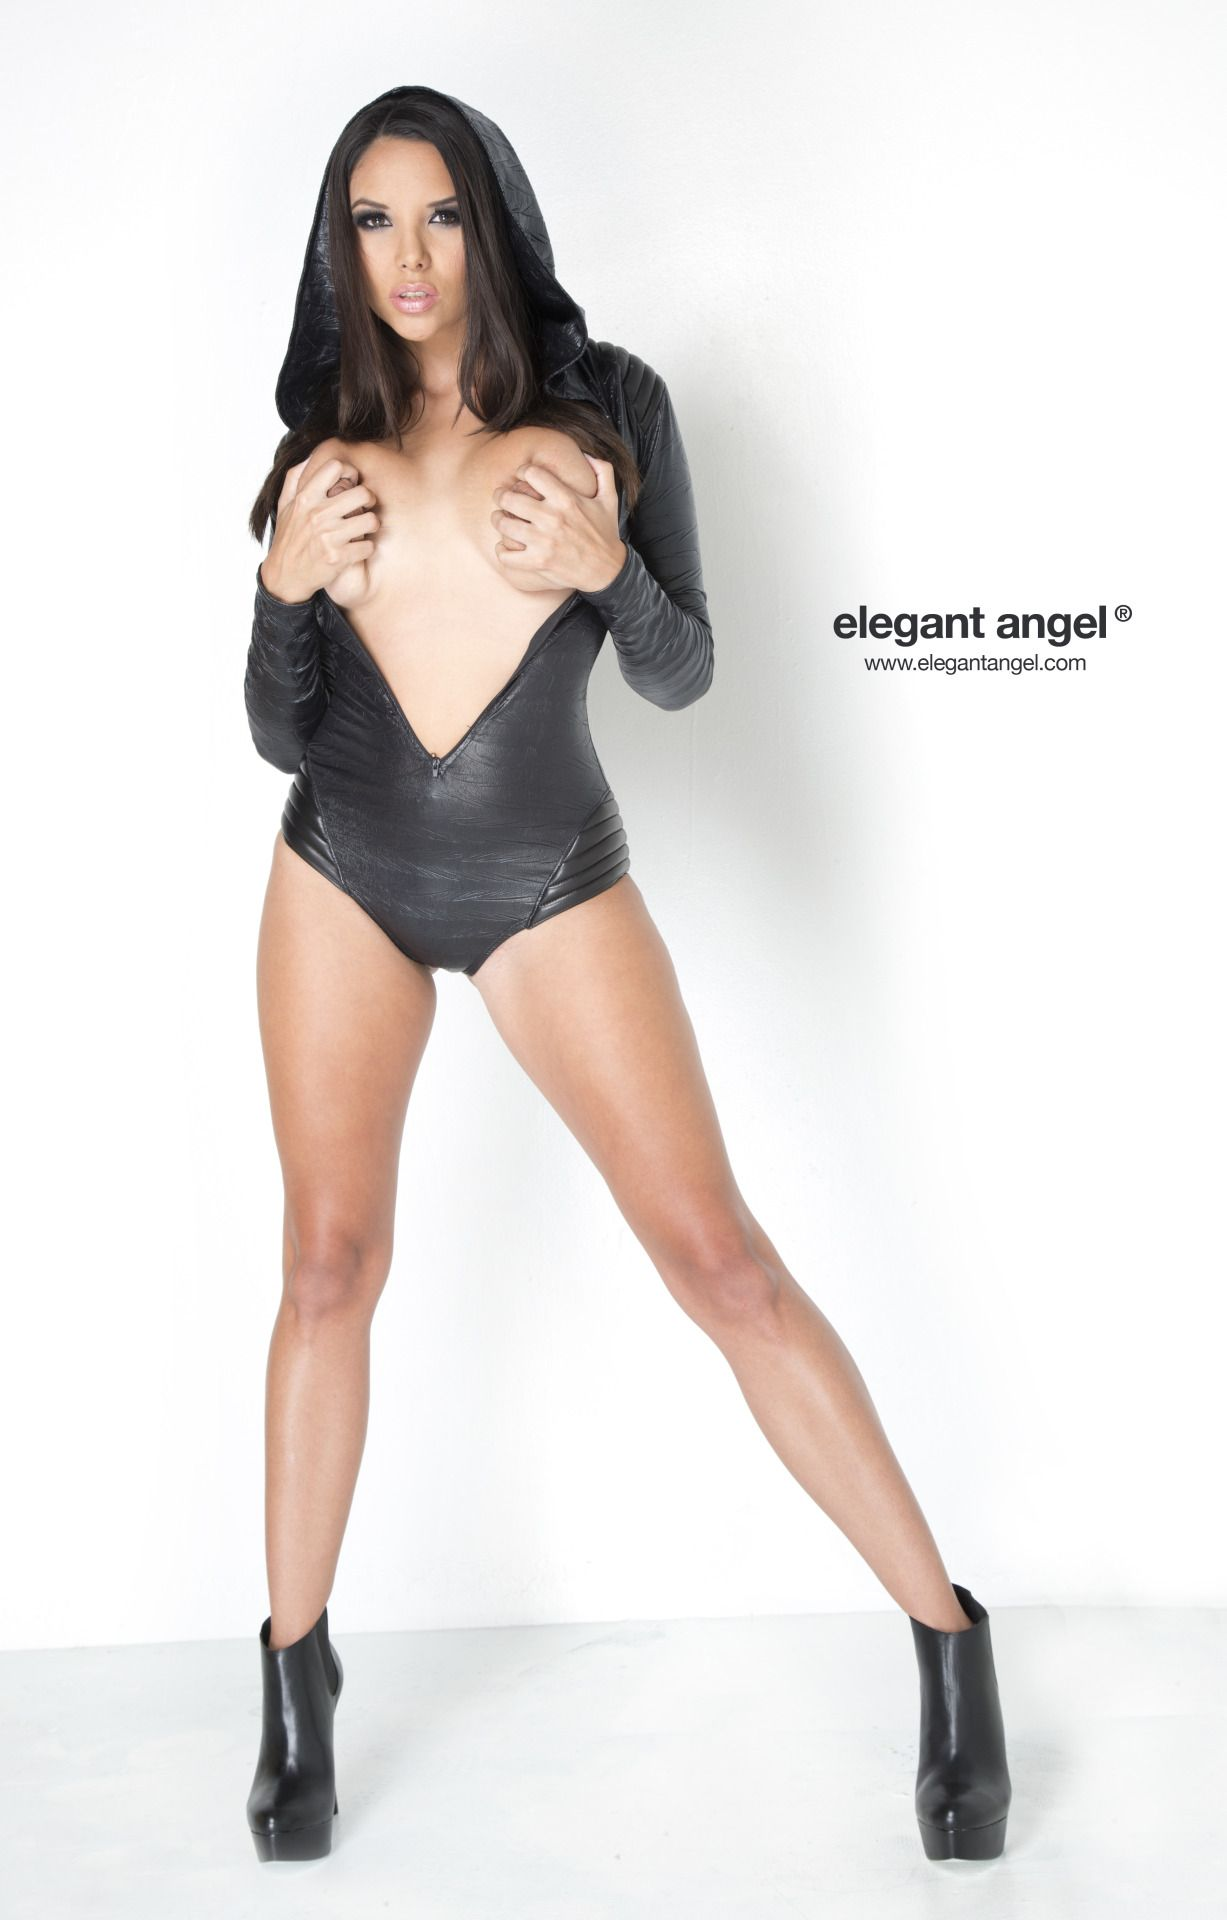 Elegant Angel Photo